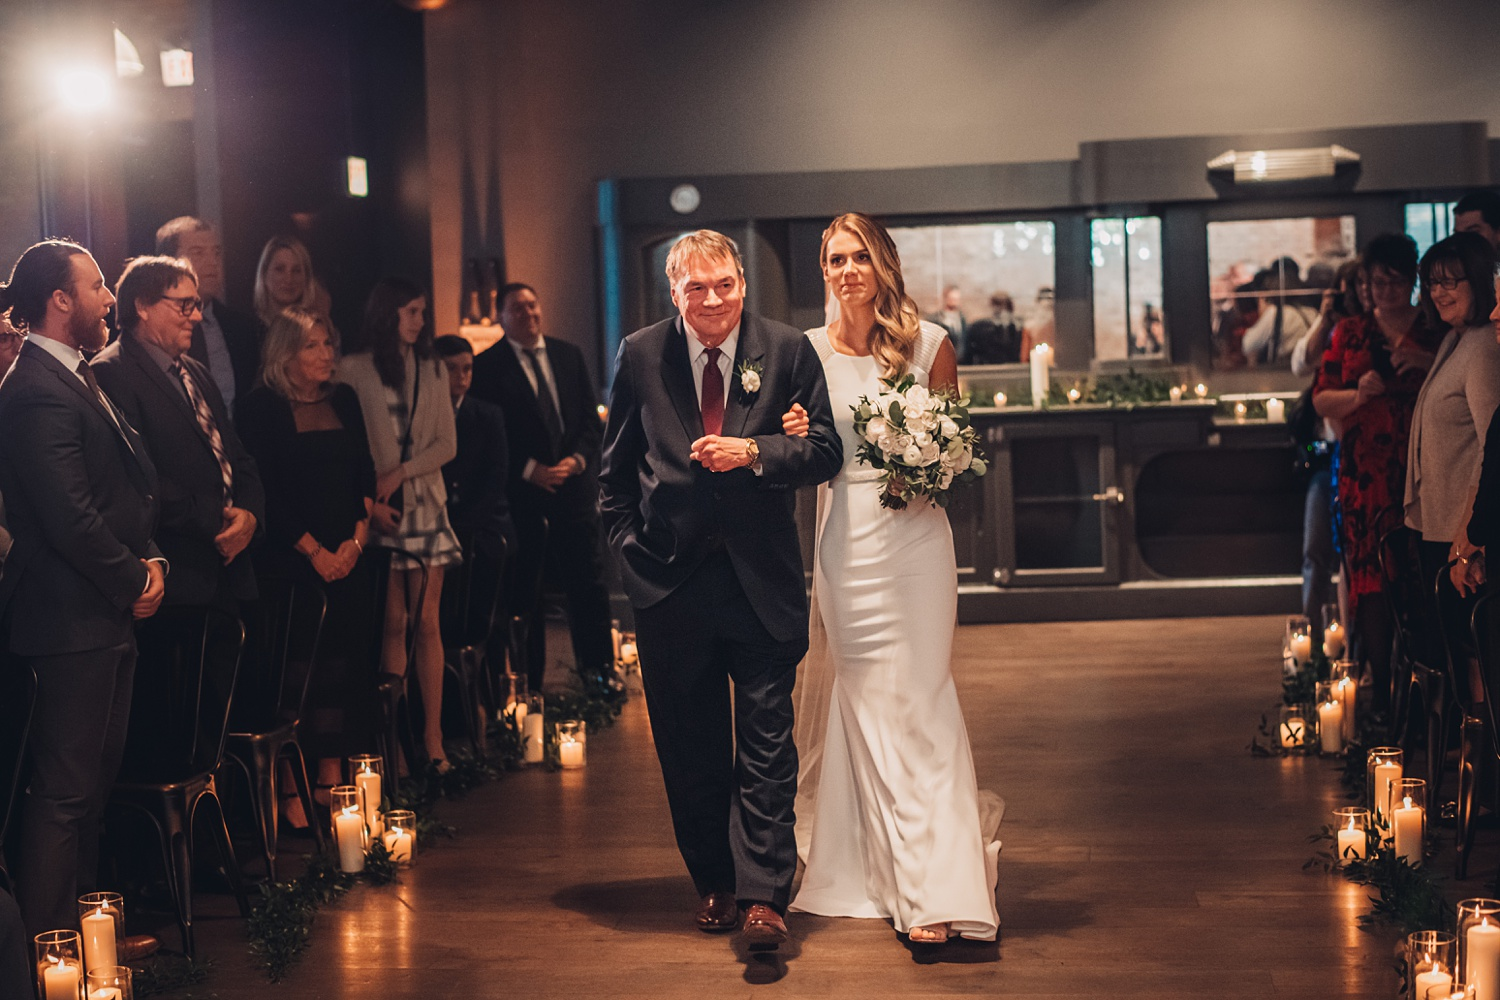 Artifact Events Fall Chicago Wedding - The Adamkovi bride walking down the isle